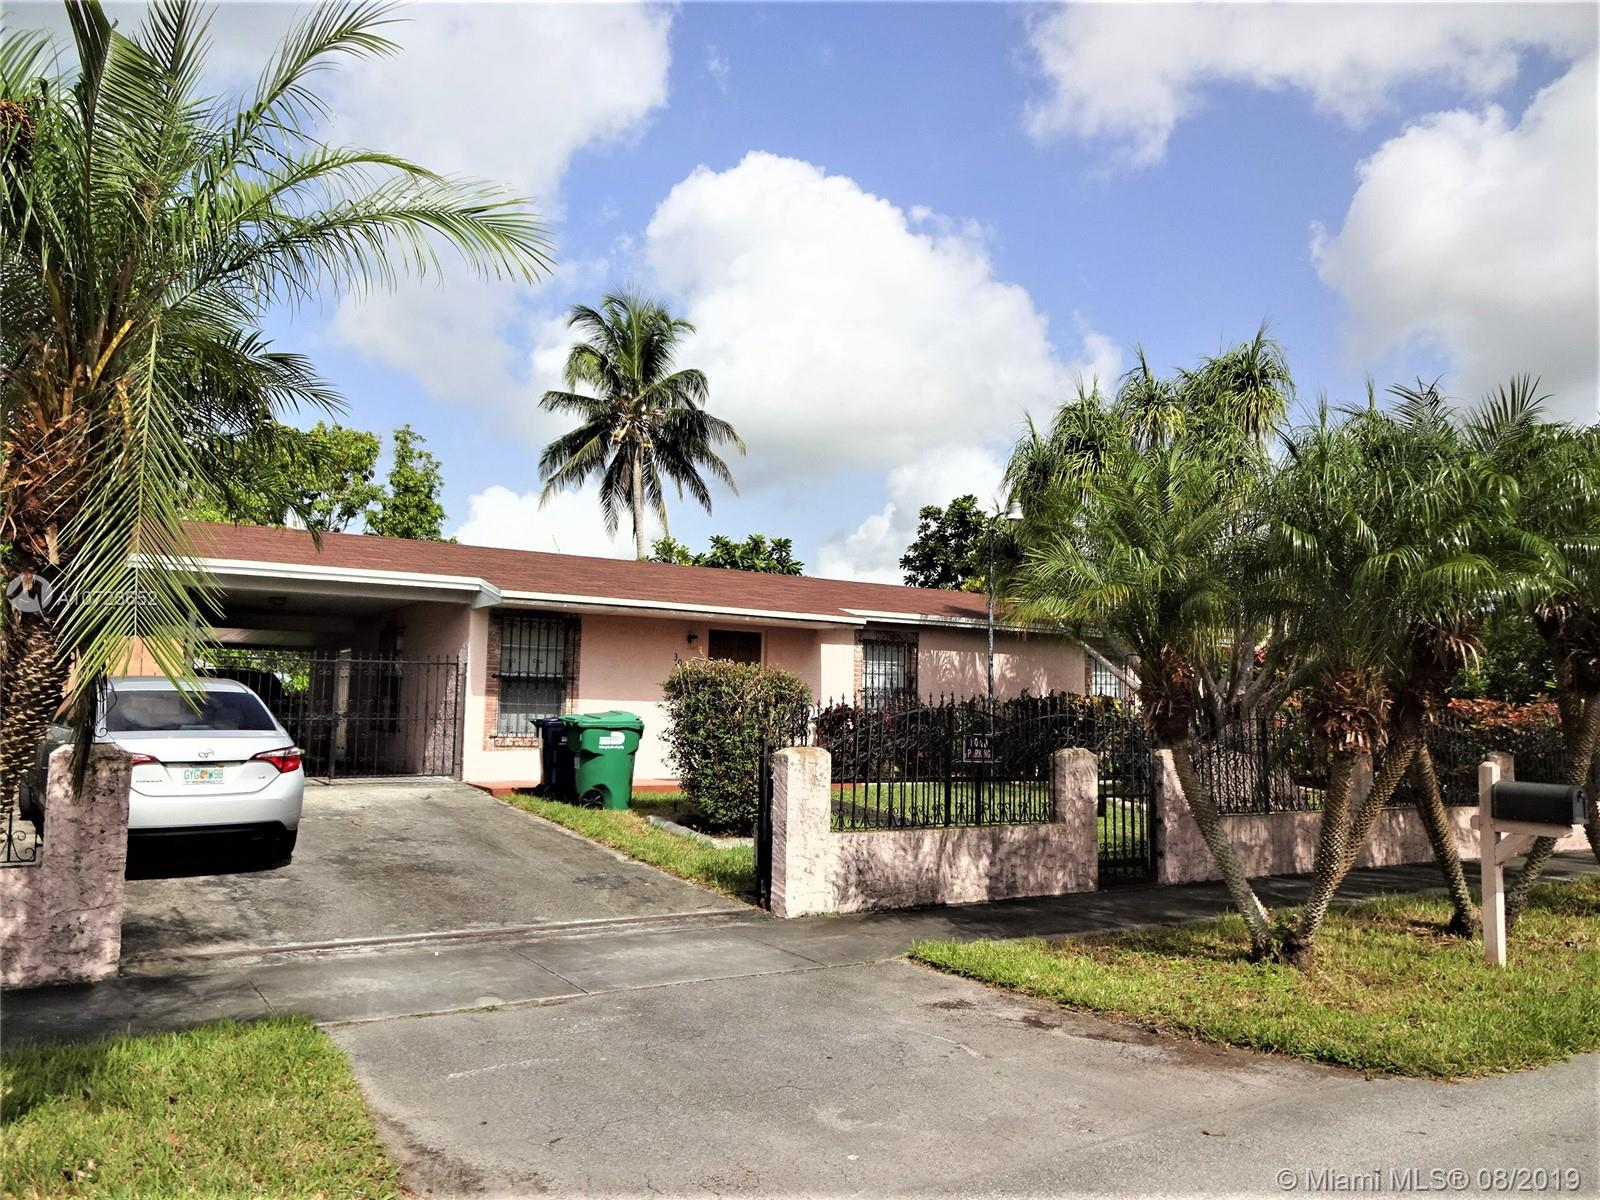 30620 SW 158th Ave, Homestead, FL 33033 - Homestead, FL real estate listing